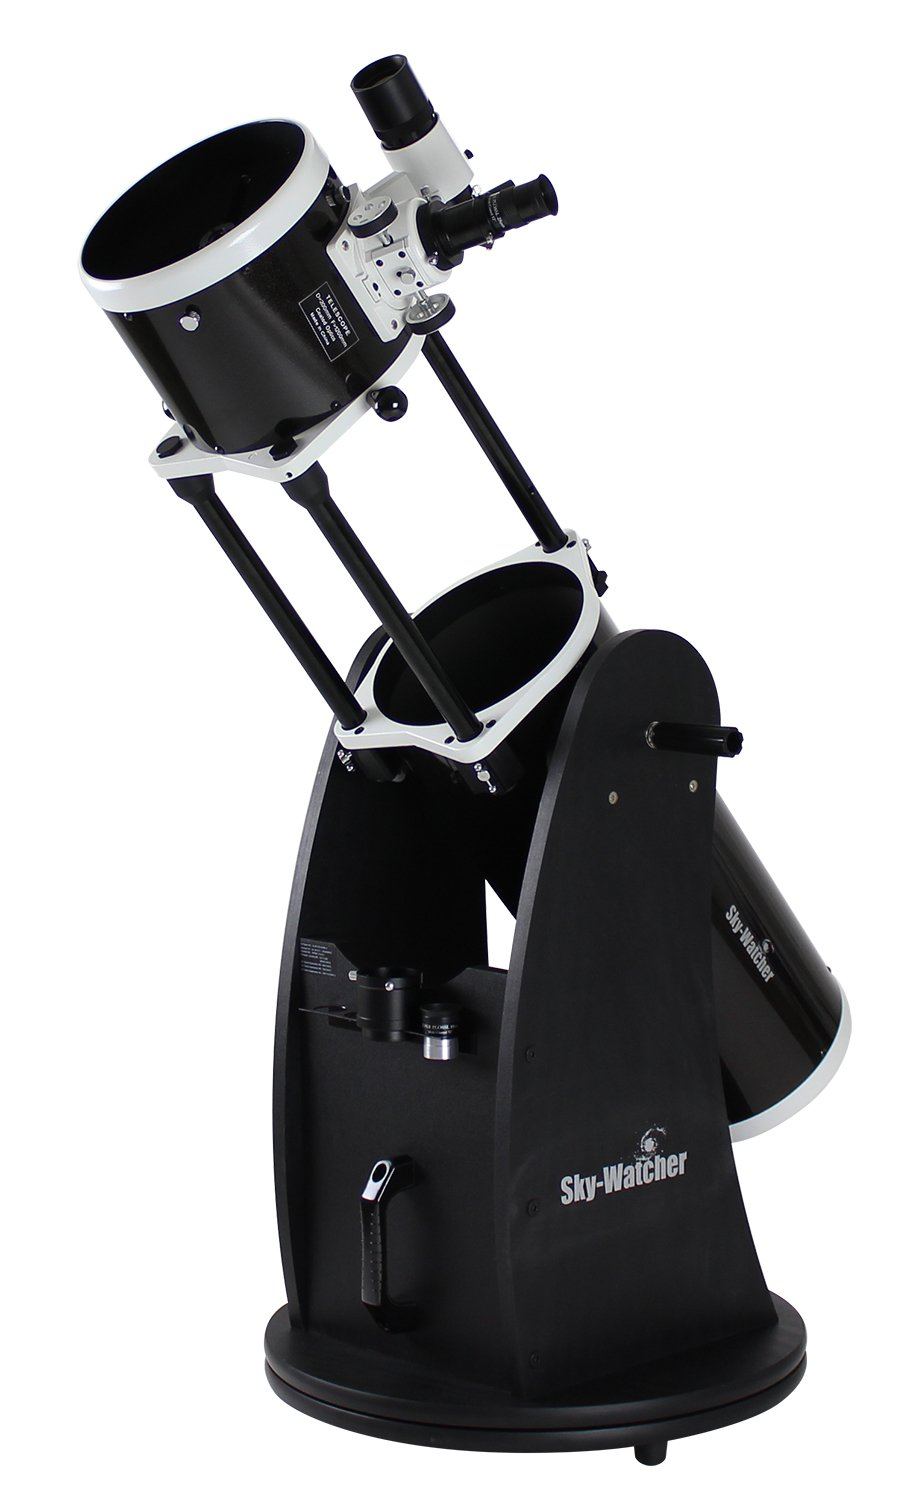 Sky-Watcher 8'' Collapsible Dobsonian Telescope by Sky Watcher